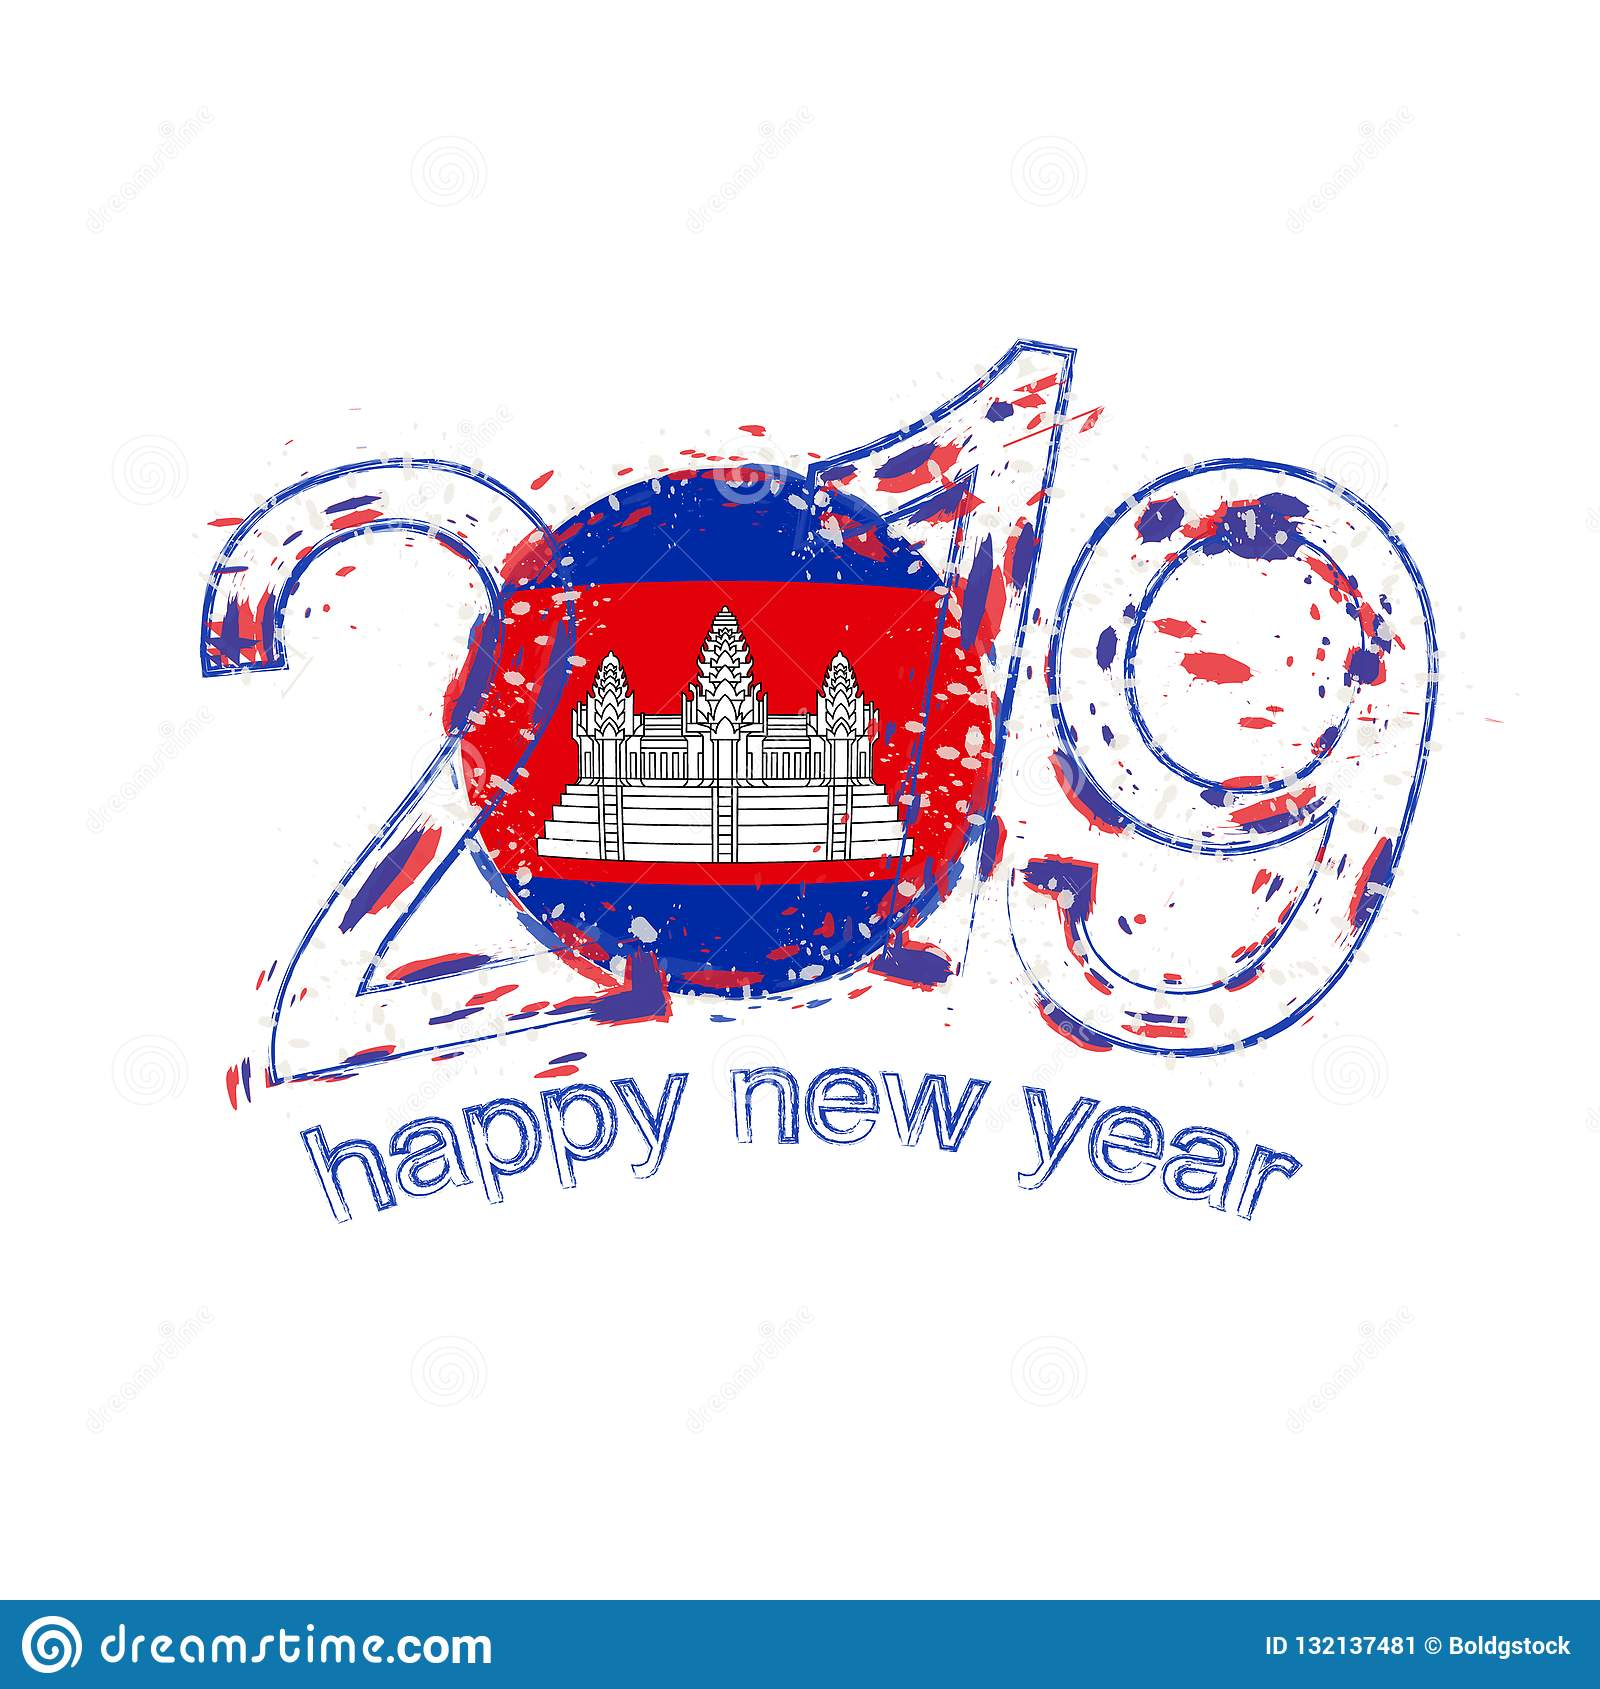 Cambodian New Year 2019 Happy New 2019 Year With Flag Of Cambodia. Holiday Grunge Vector